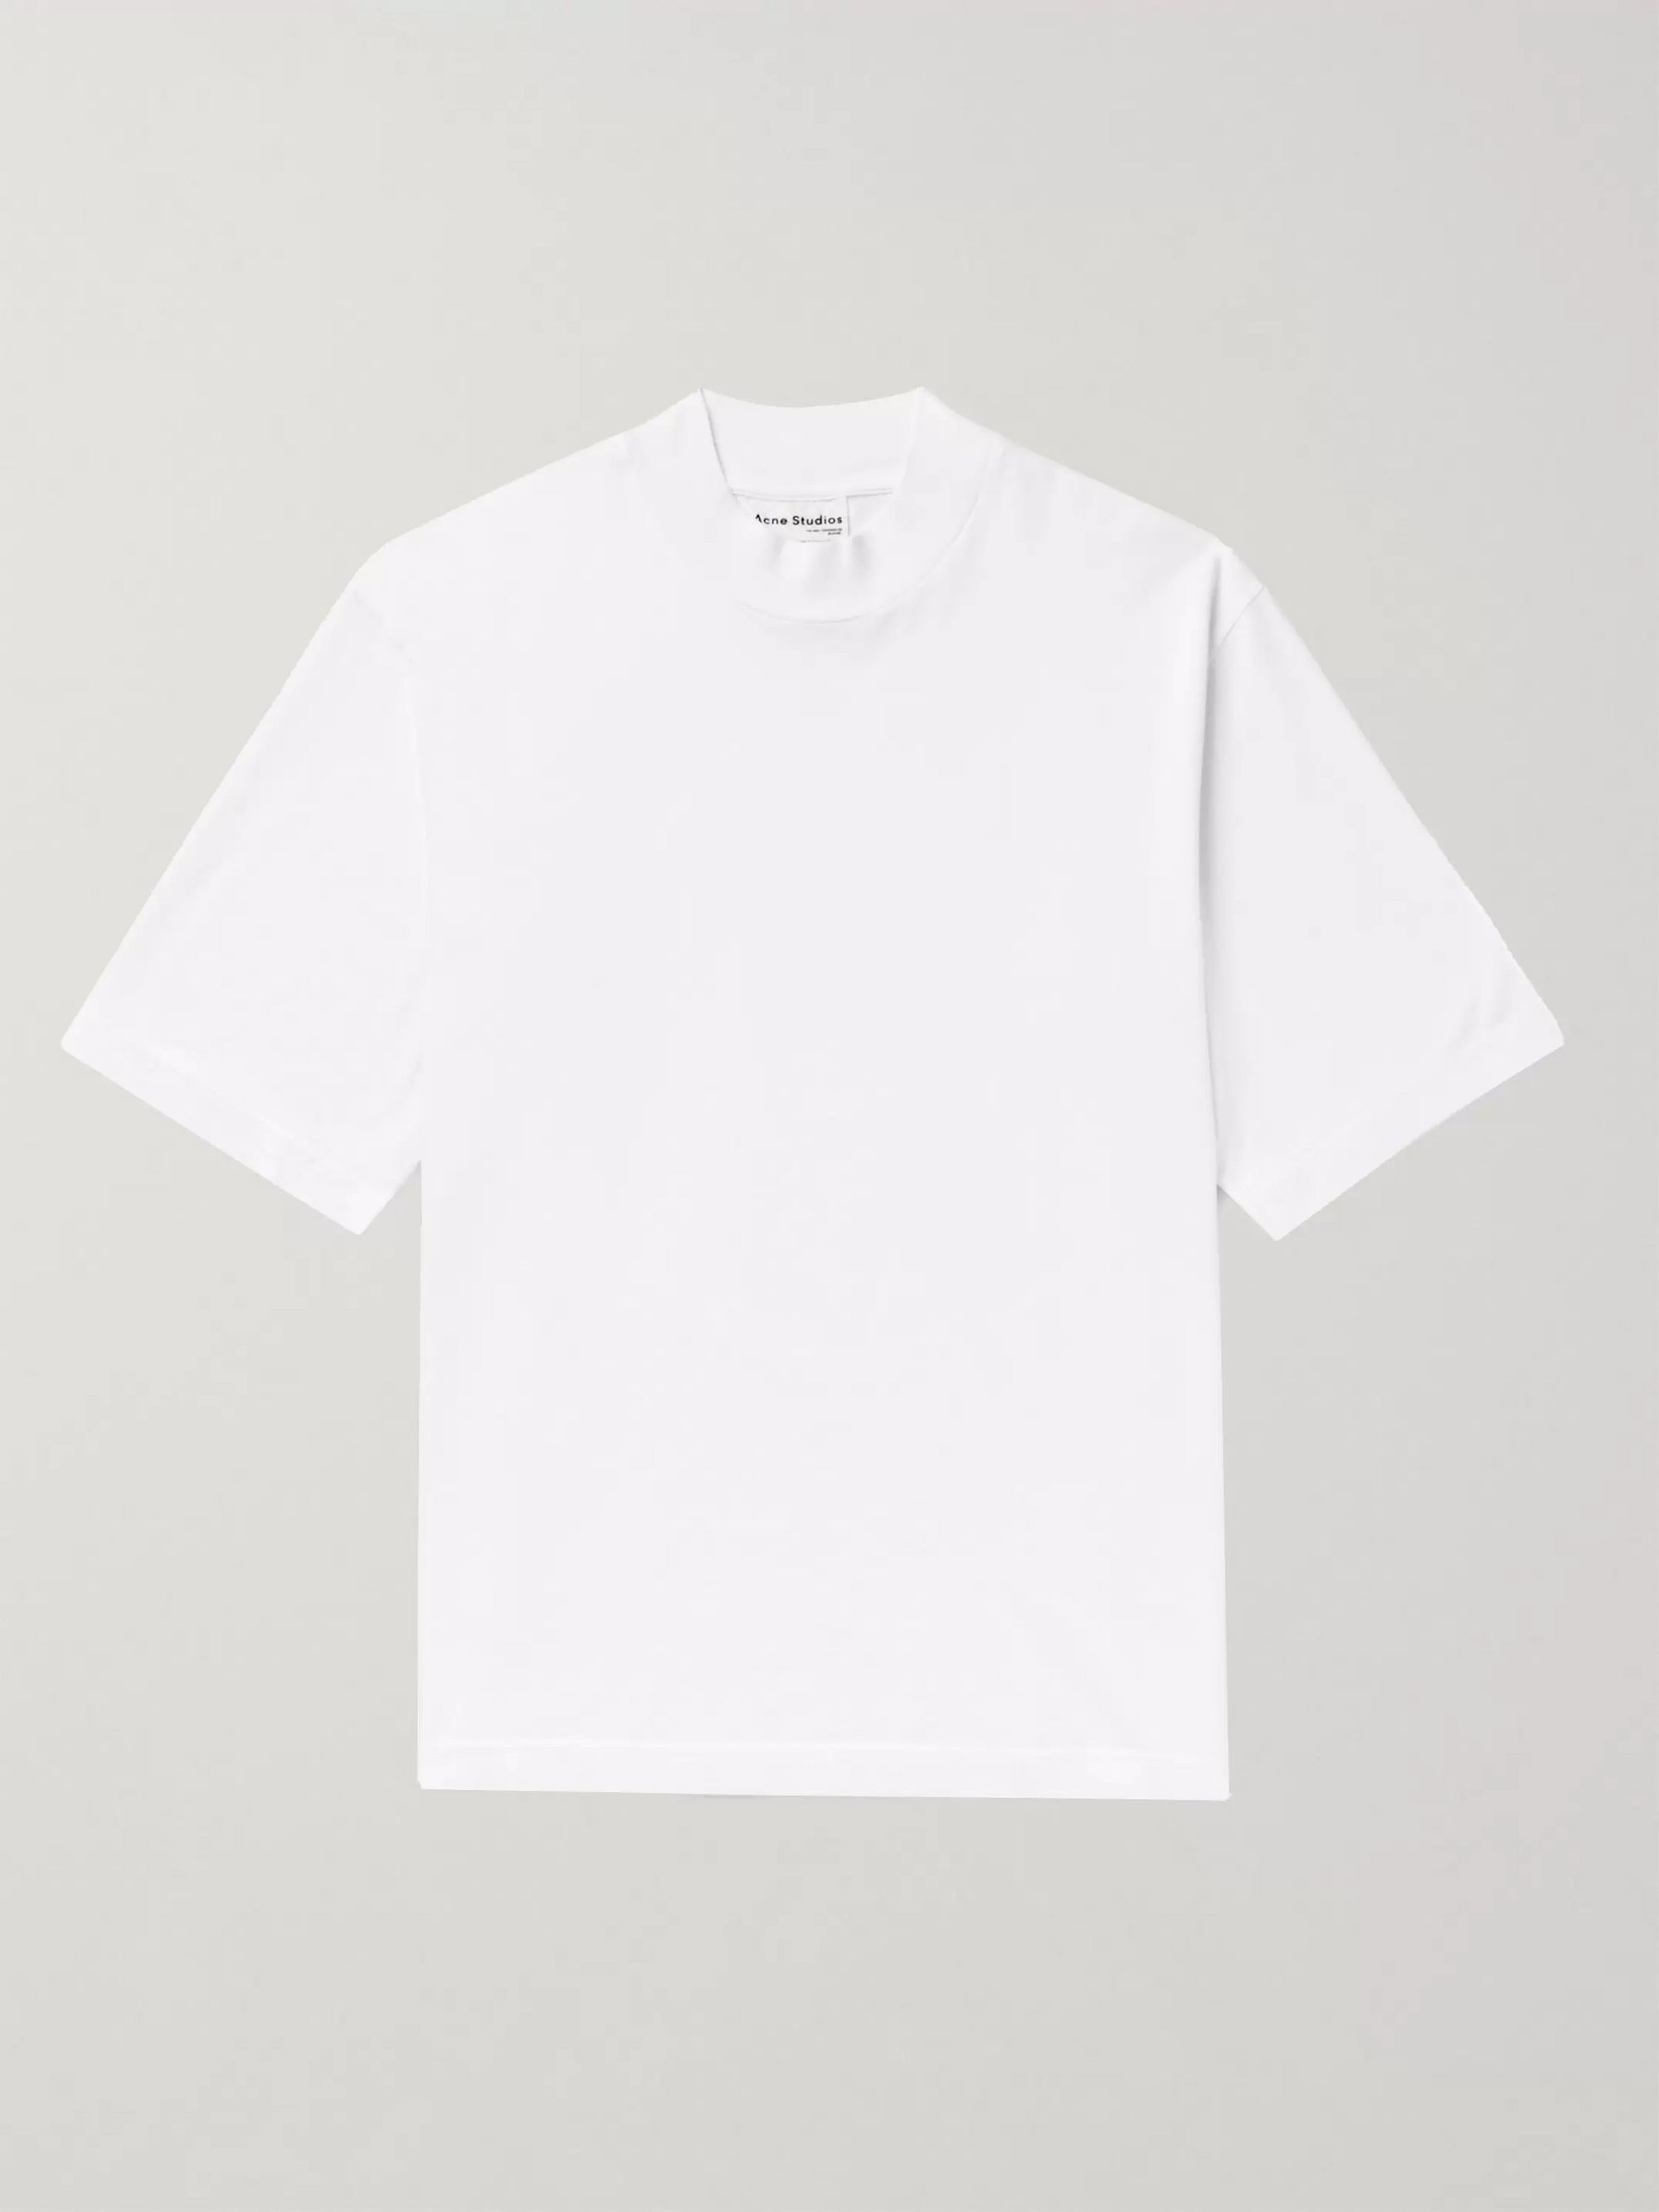 아크네 스튜디오 Acne Studios Oversized Cotton-Jersey T-Shirt,White